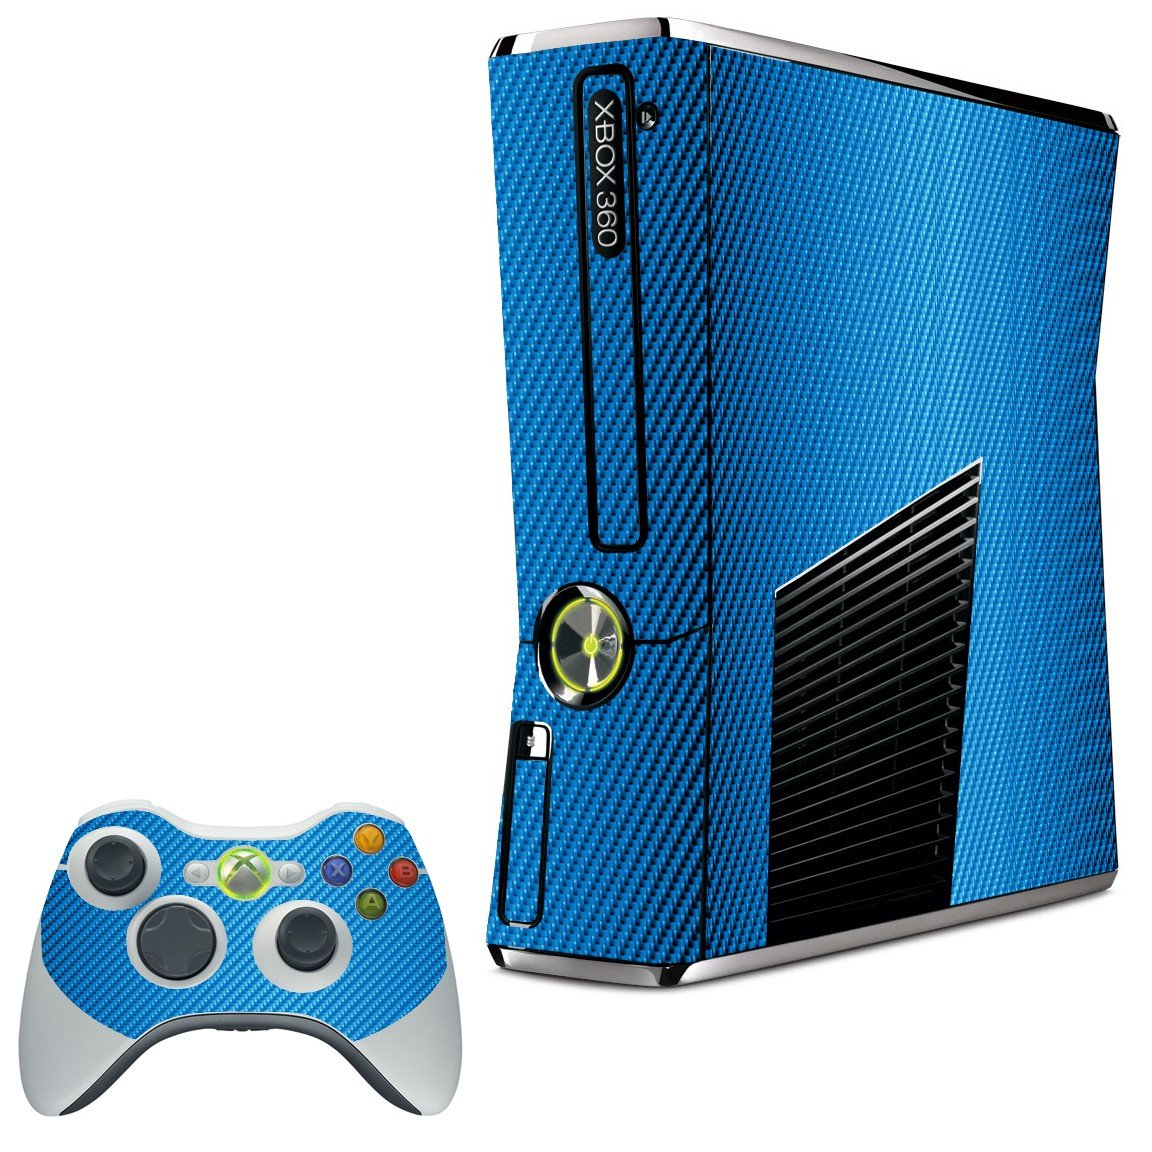 BLUE TEXTURED CARBON FIBER XBOX 360 SLIM GAME CONSOLE SKIN